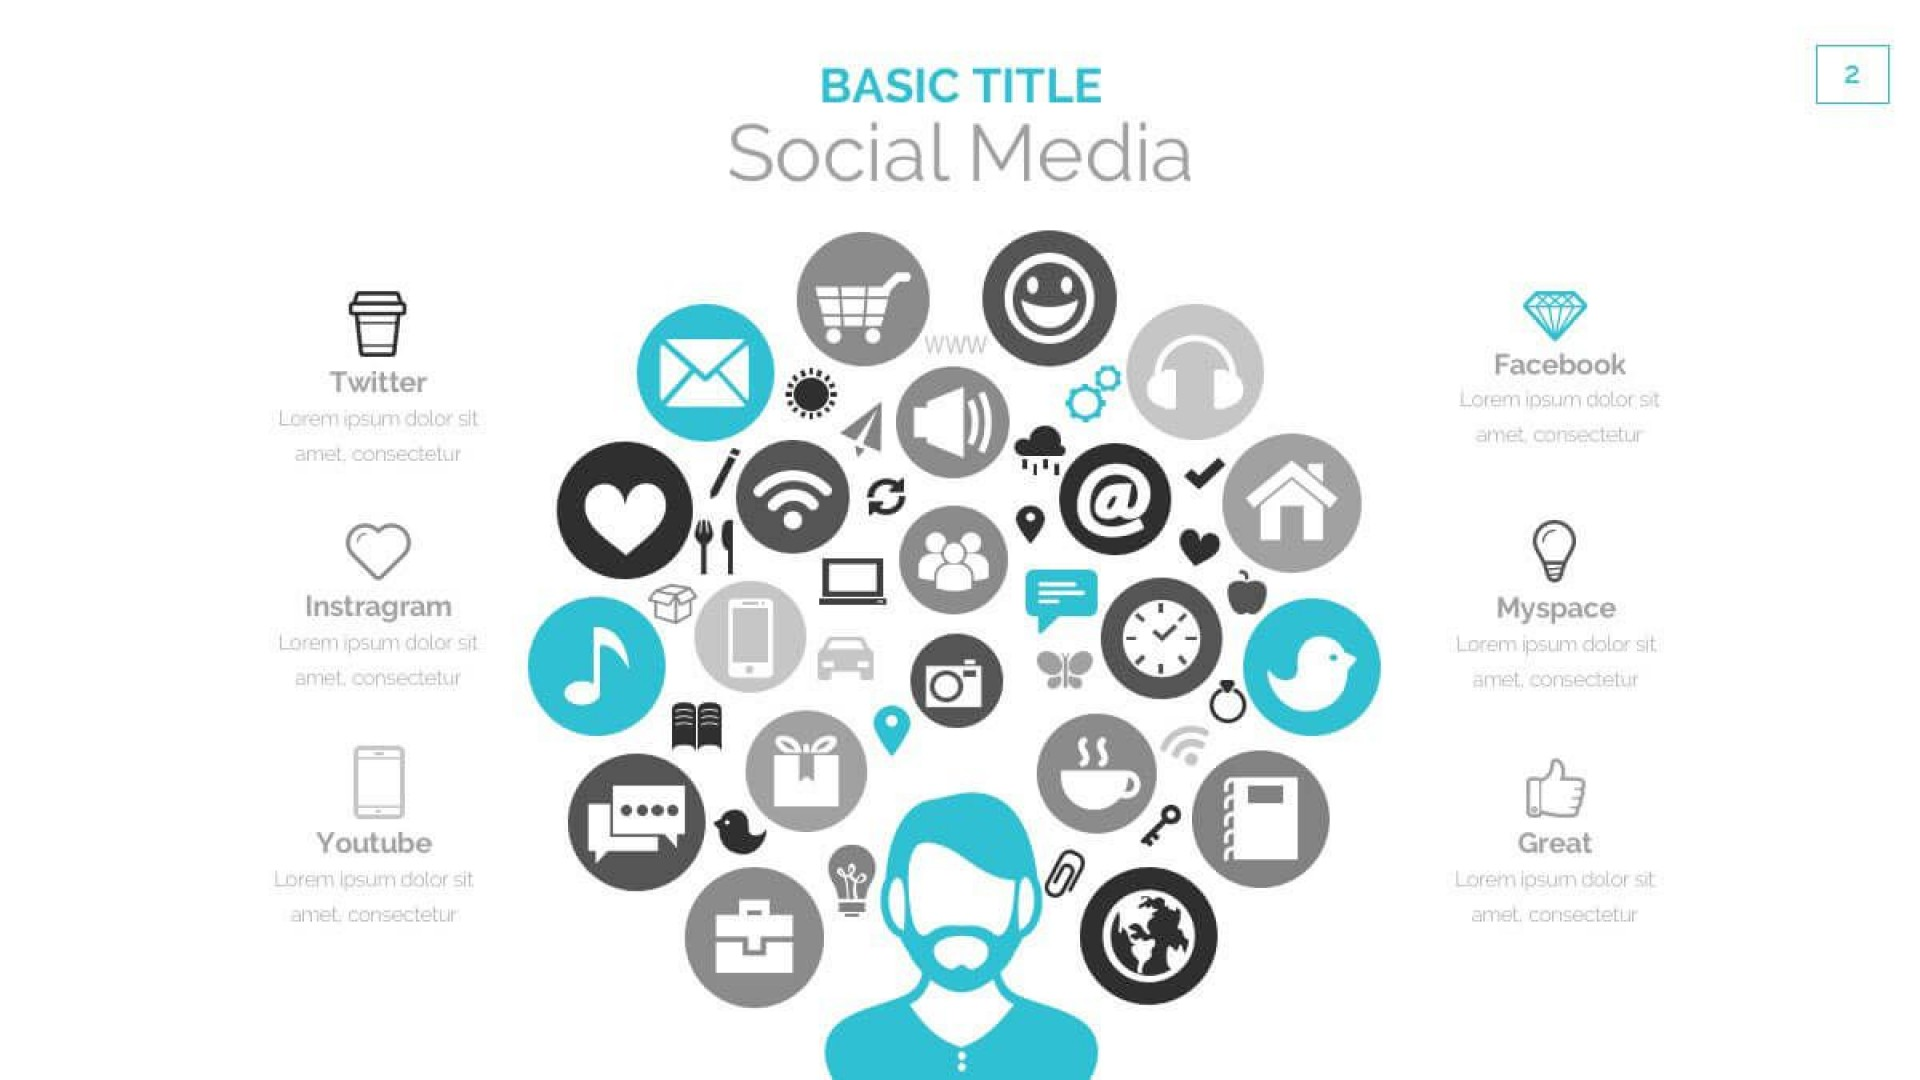 005 Shocking Social Media Ppt Template Free Image  Download Report Powerpoint1920